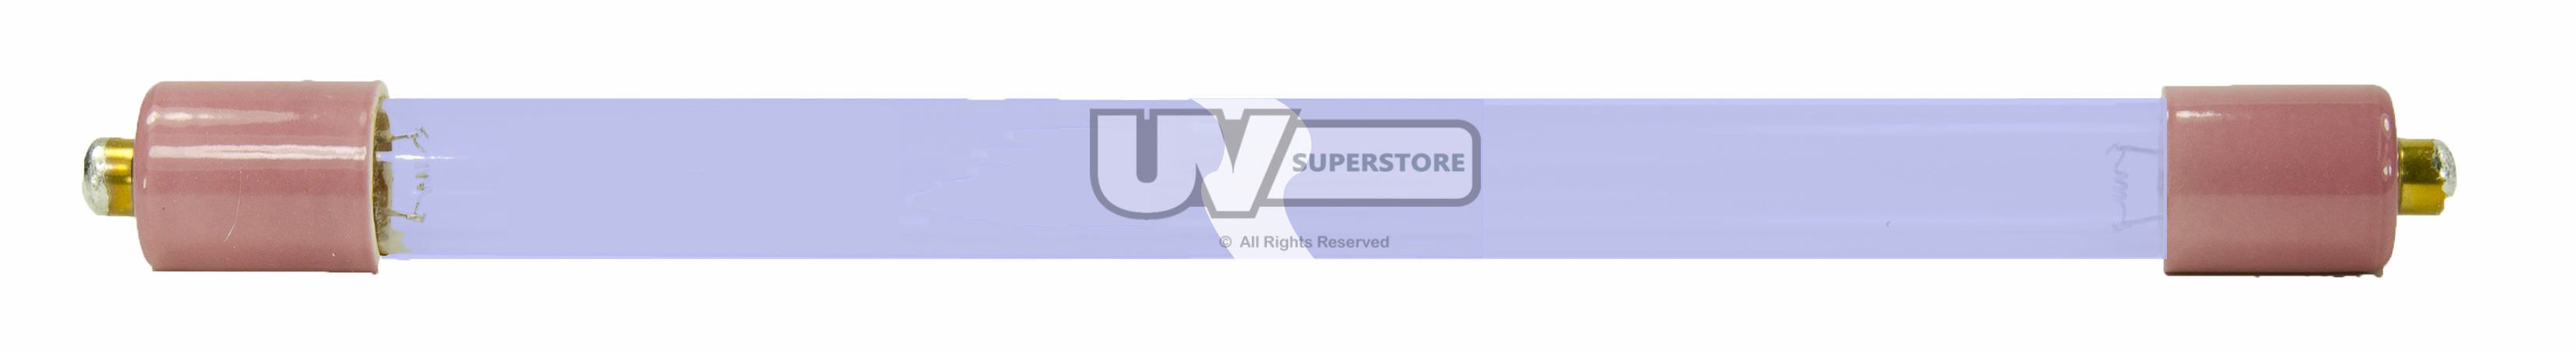 G36v 3084 Replacement Uv Lamp 254nm Uv Superstore Inc